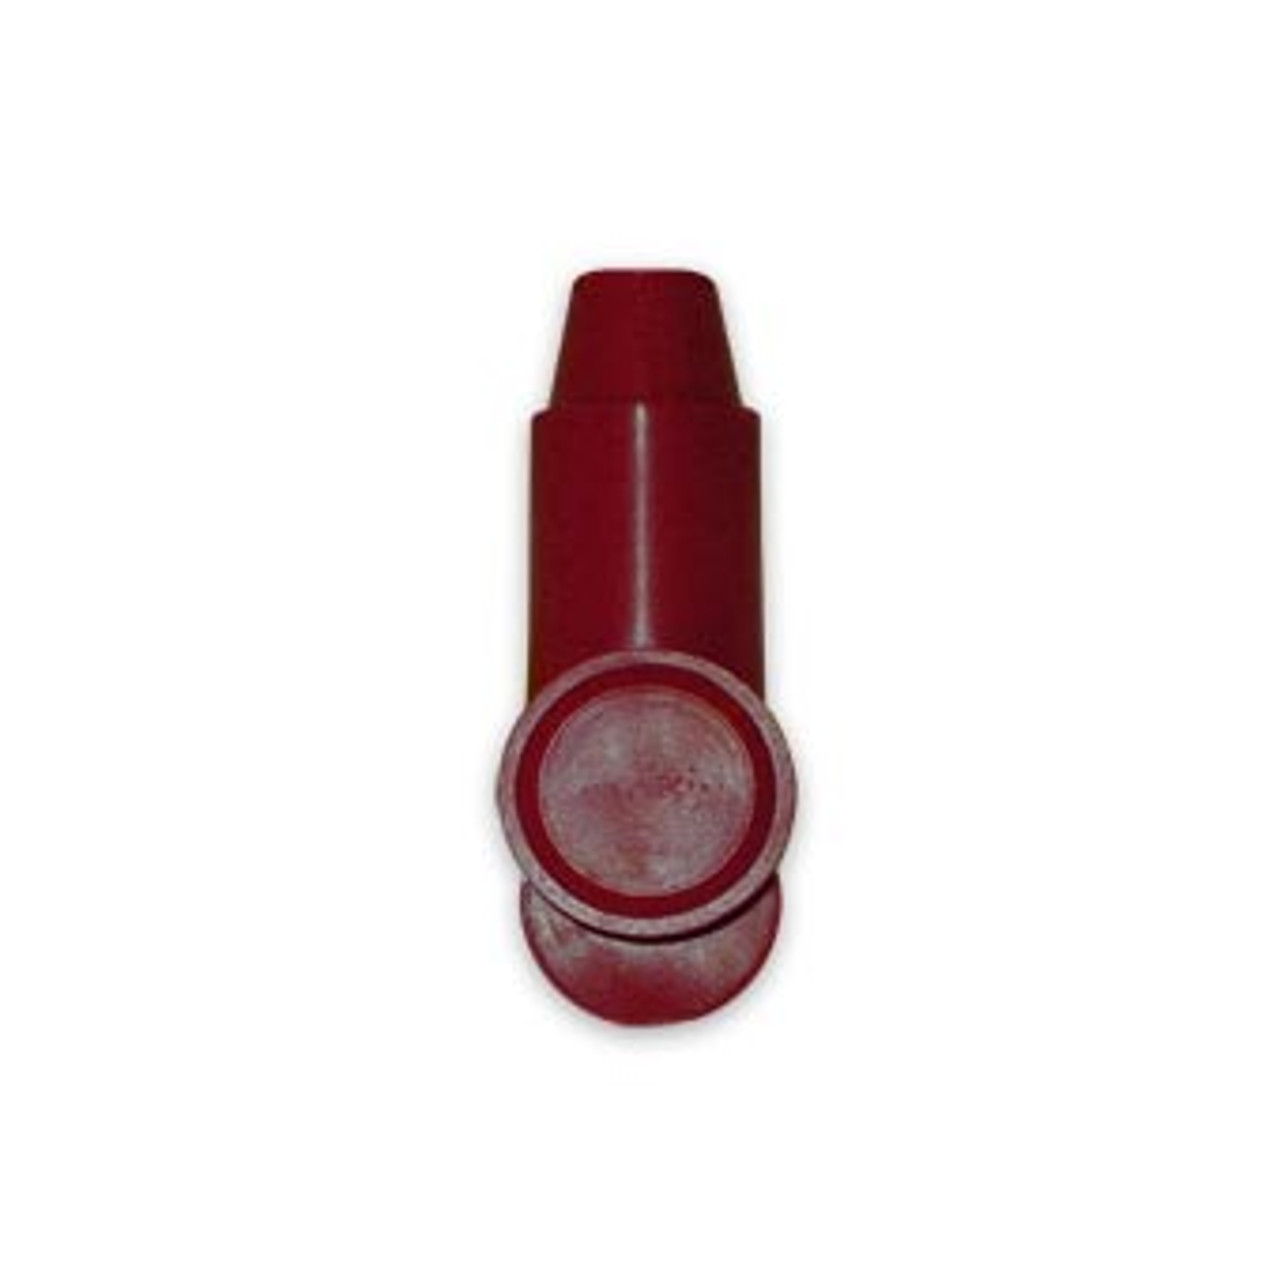 ALT STUD TYPE 10-18GA RED BATTERY BOOT